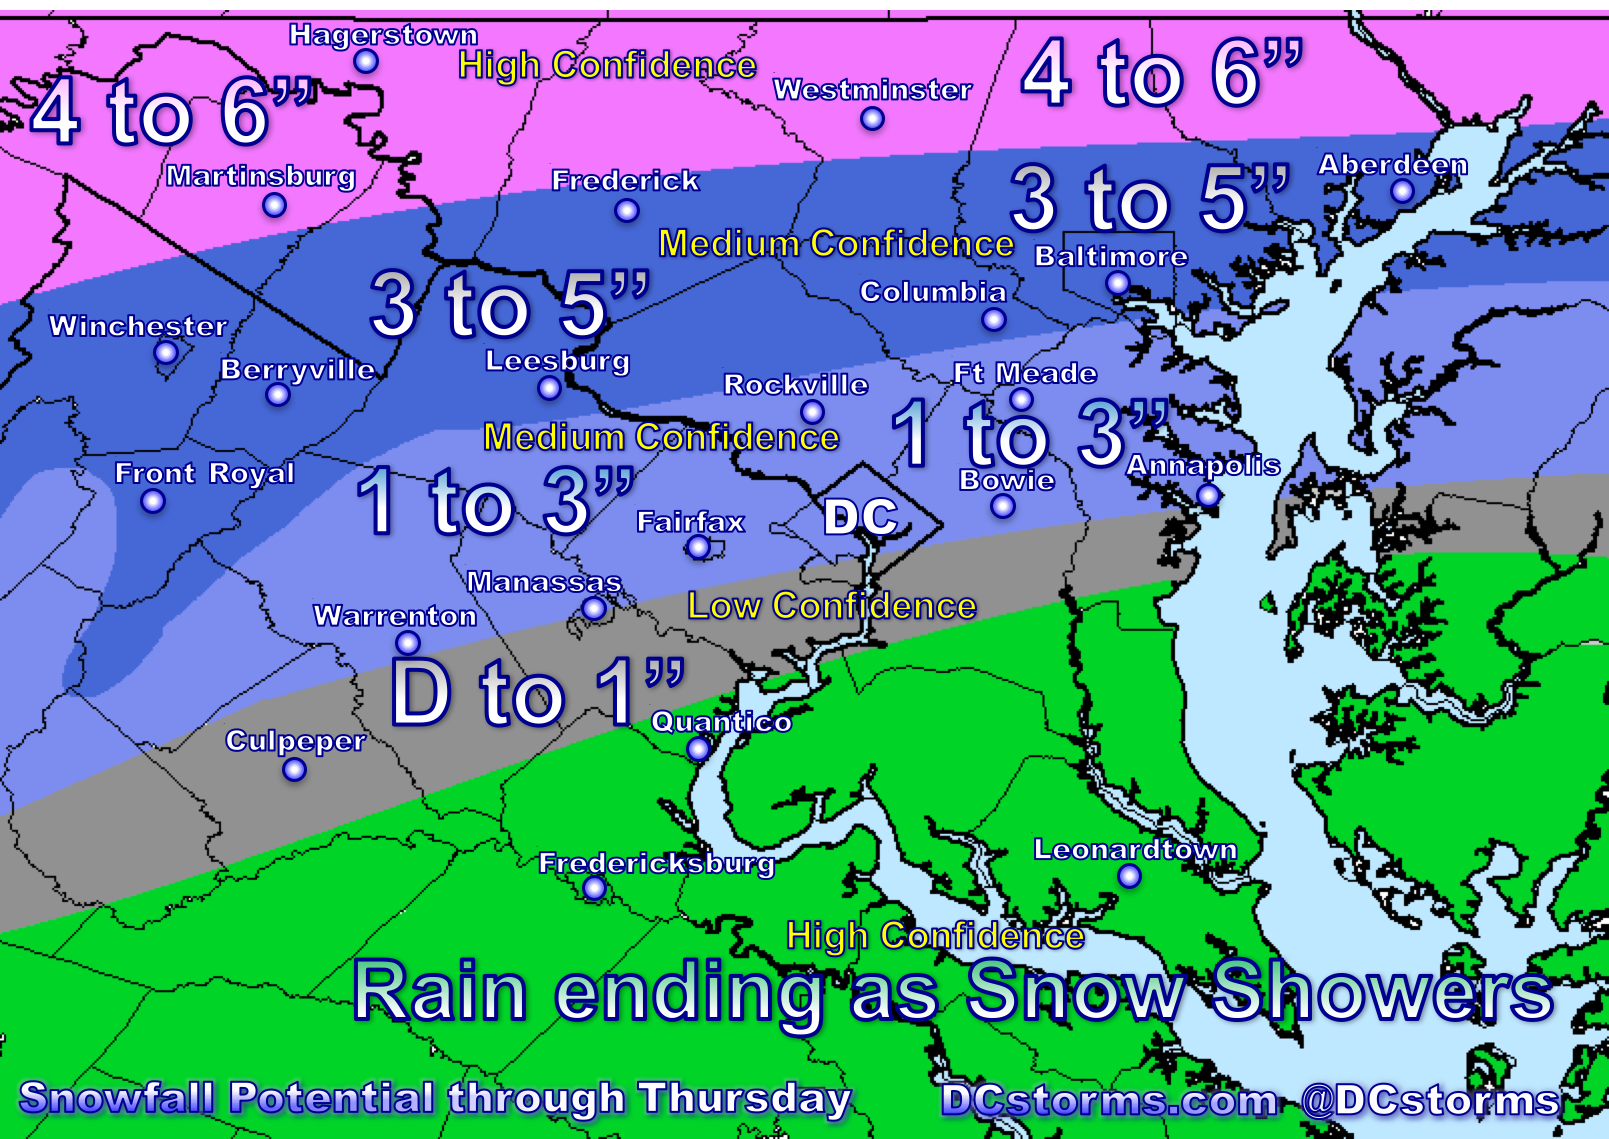 Snowfall Accumulation Map Preliminary Snowfall Accumulation Map Posted for Wednesday Night